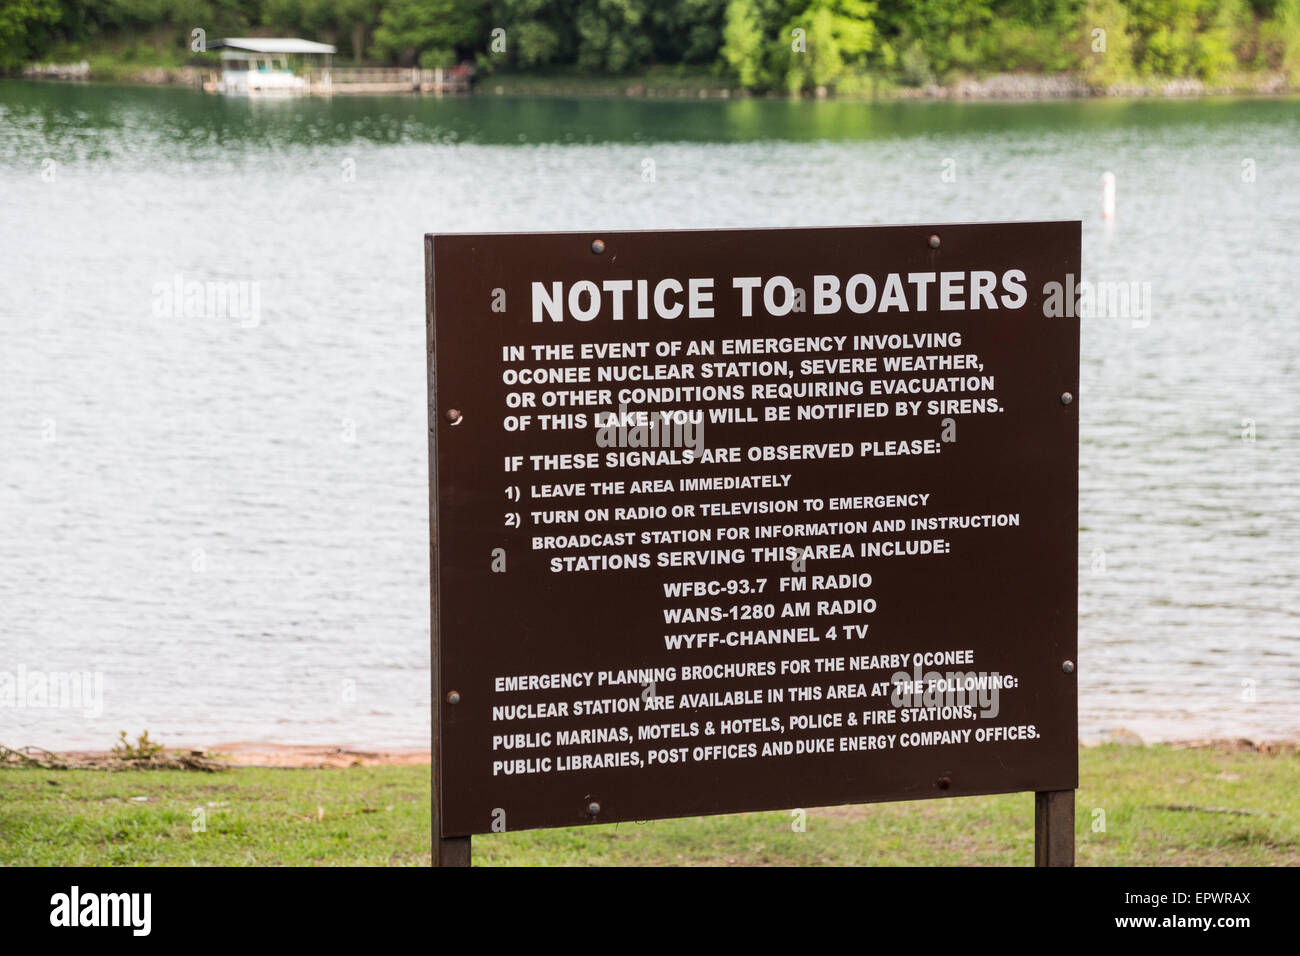 Notice to boaters, South Cove, Lake Keowee, Seneca, Oconee County, South Carolina, USA. - Stock Image